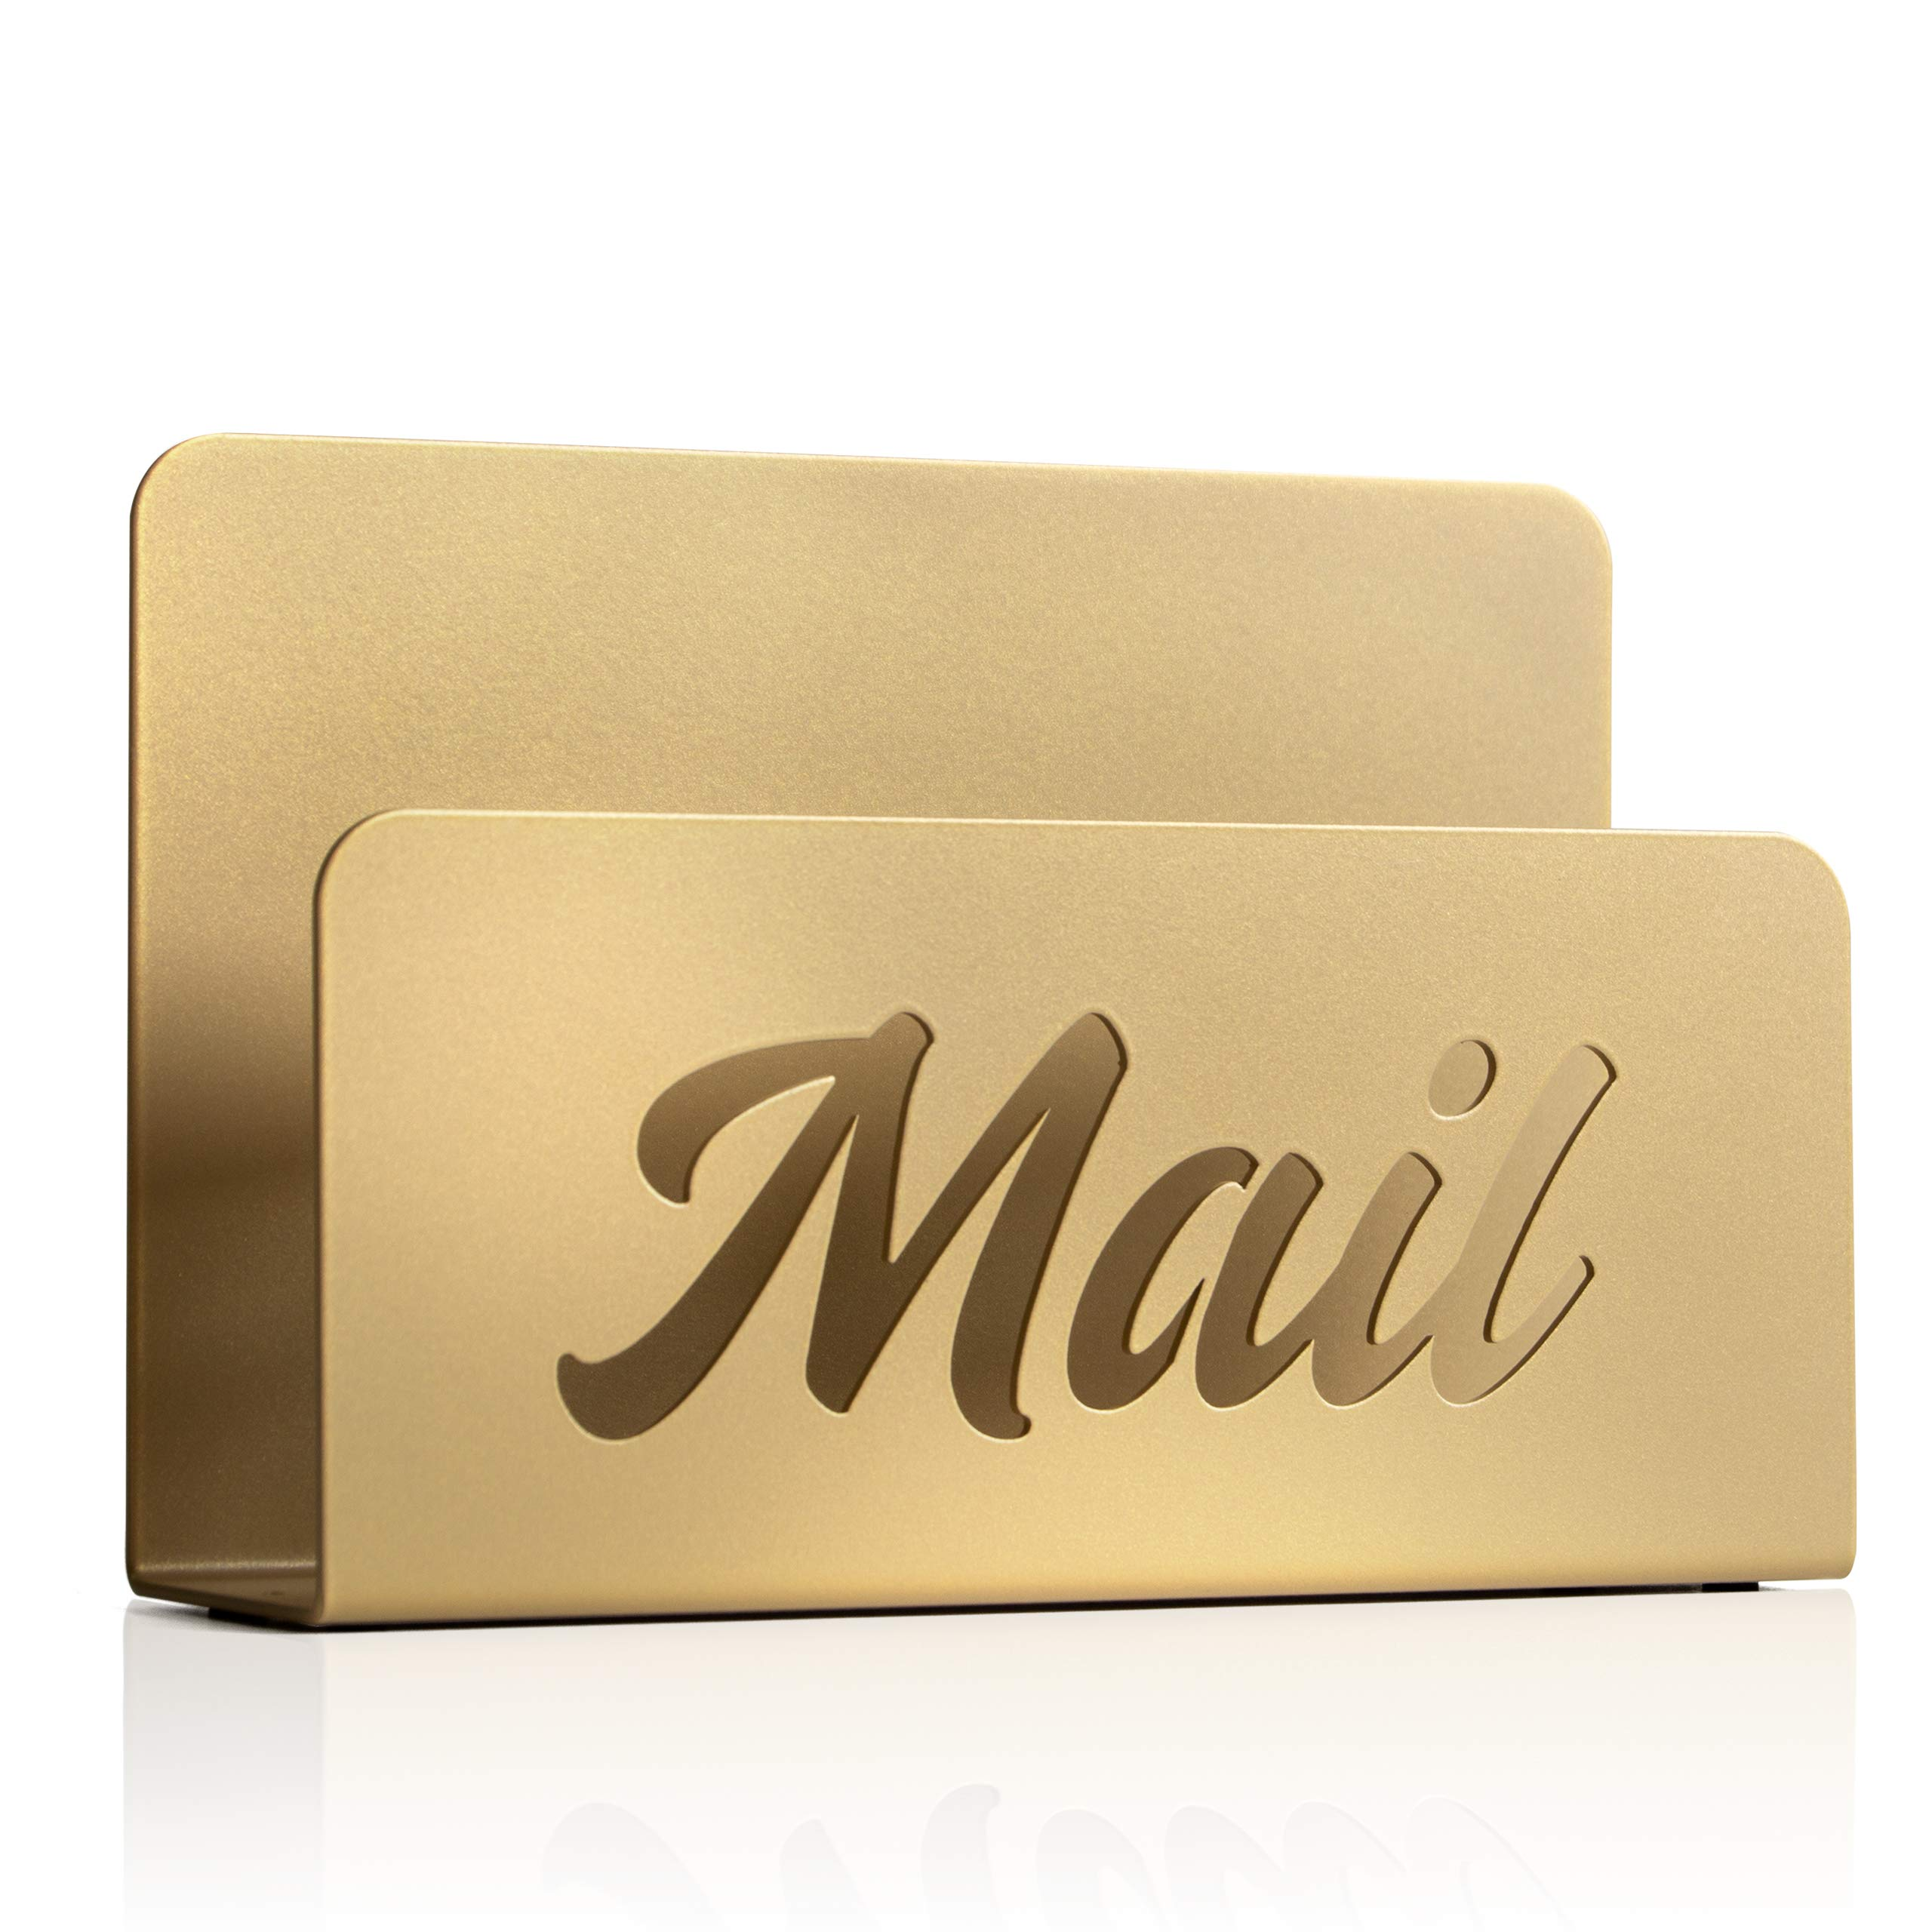 Metal Mail Holder and Desk Organiser (Anodic Gold)